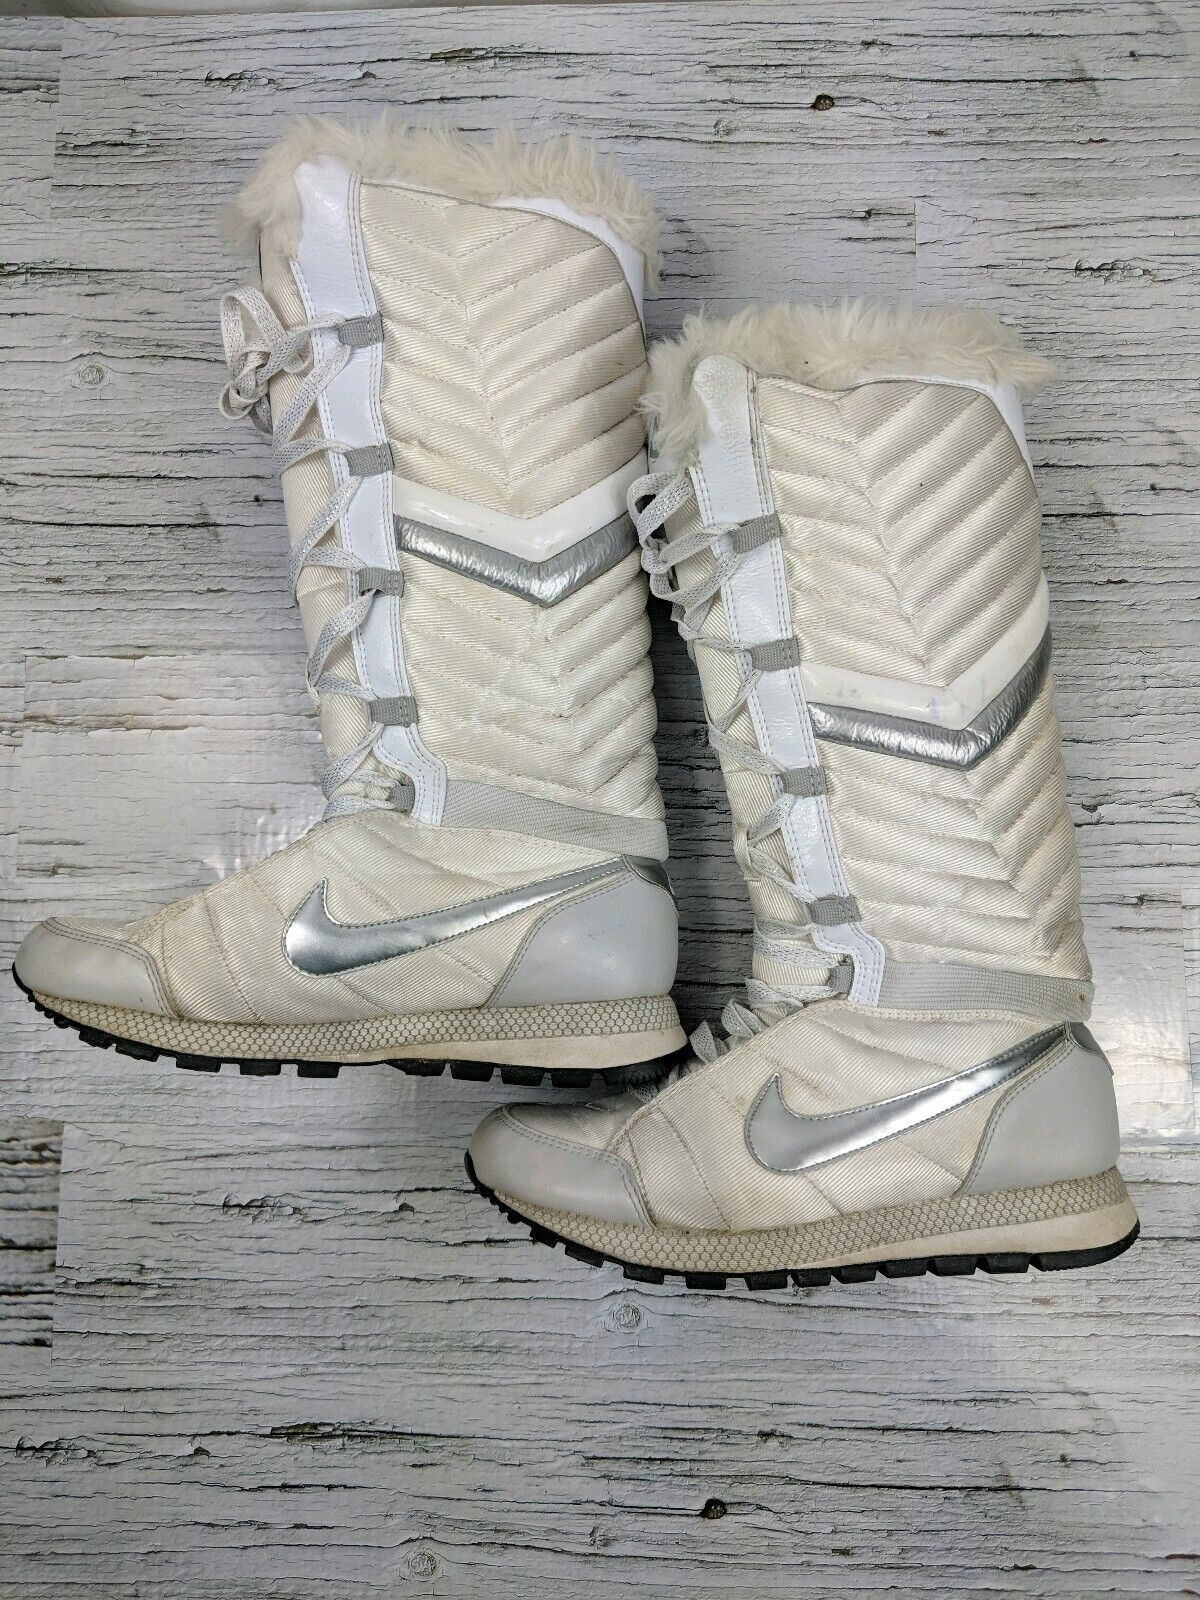 Nike Apres Boots shoes white silver Size 6.5 Womens